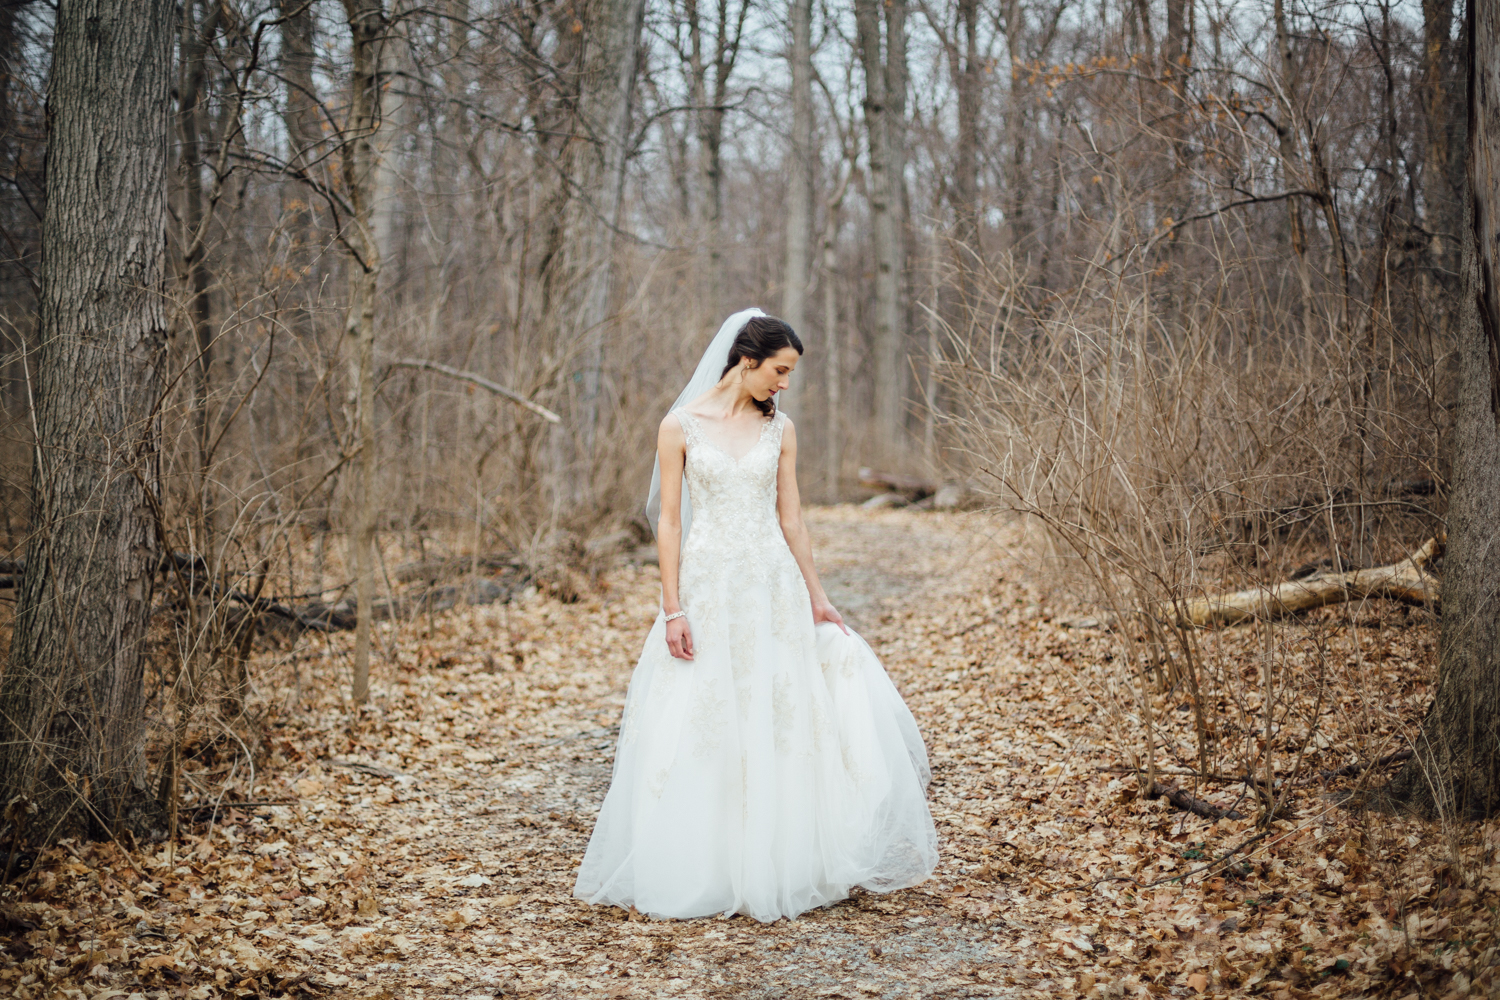 Fun, Intimate Spring Wedding by Corrie Mick Photography-72.jpg